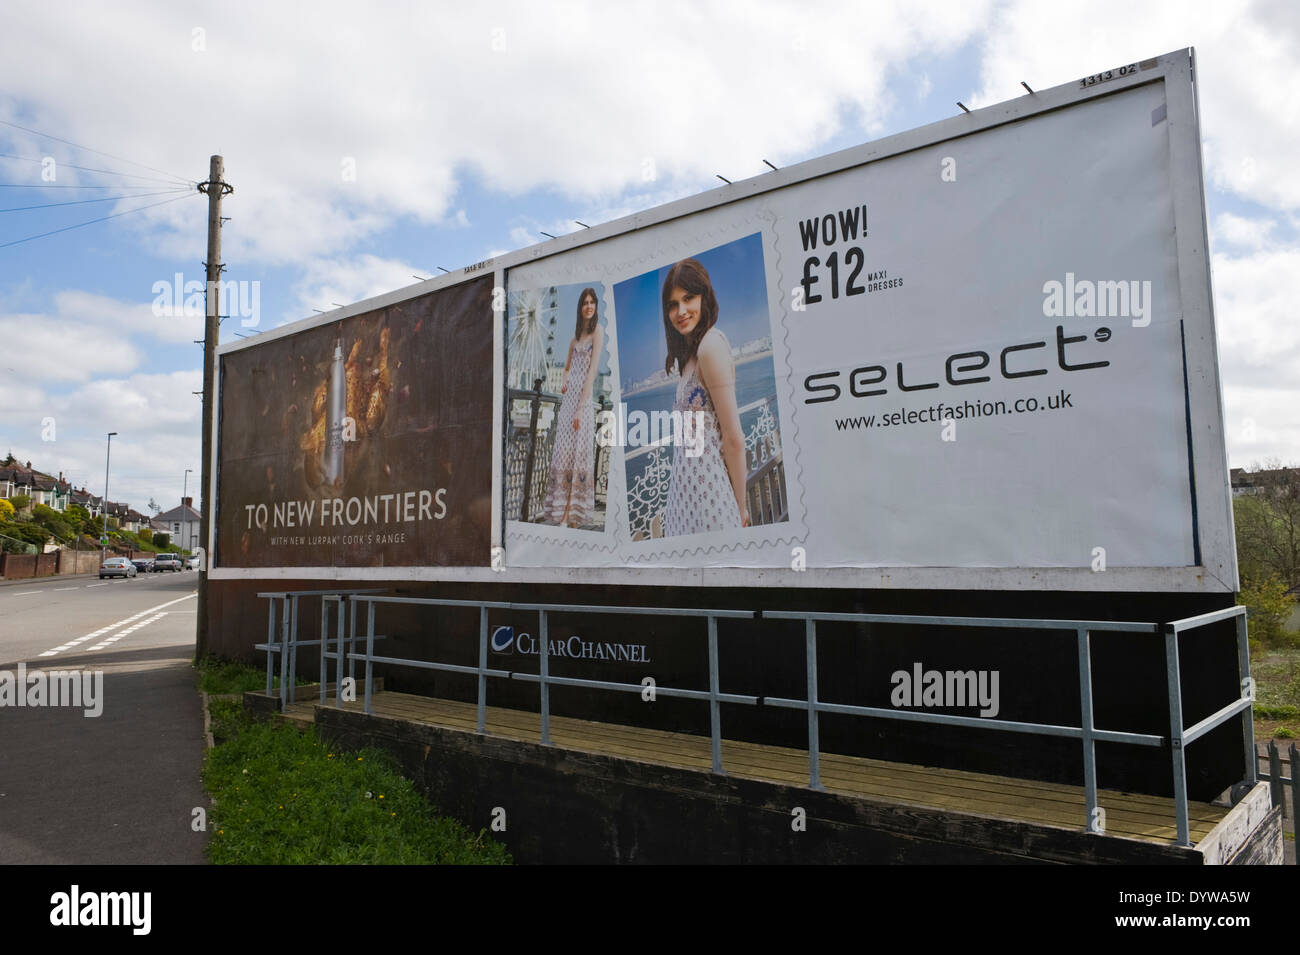 Lurpak cooking mist & Select fashion advertising billboards on ClearChannel roadside site in Newport South Wales UK - Stock Image